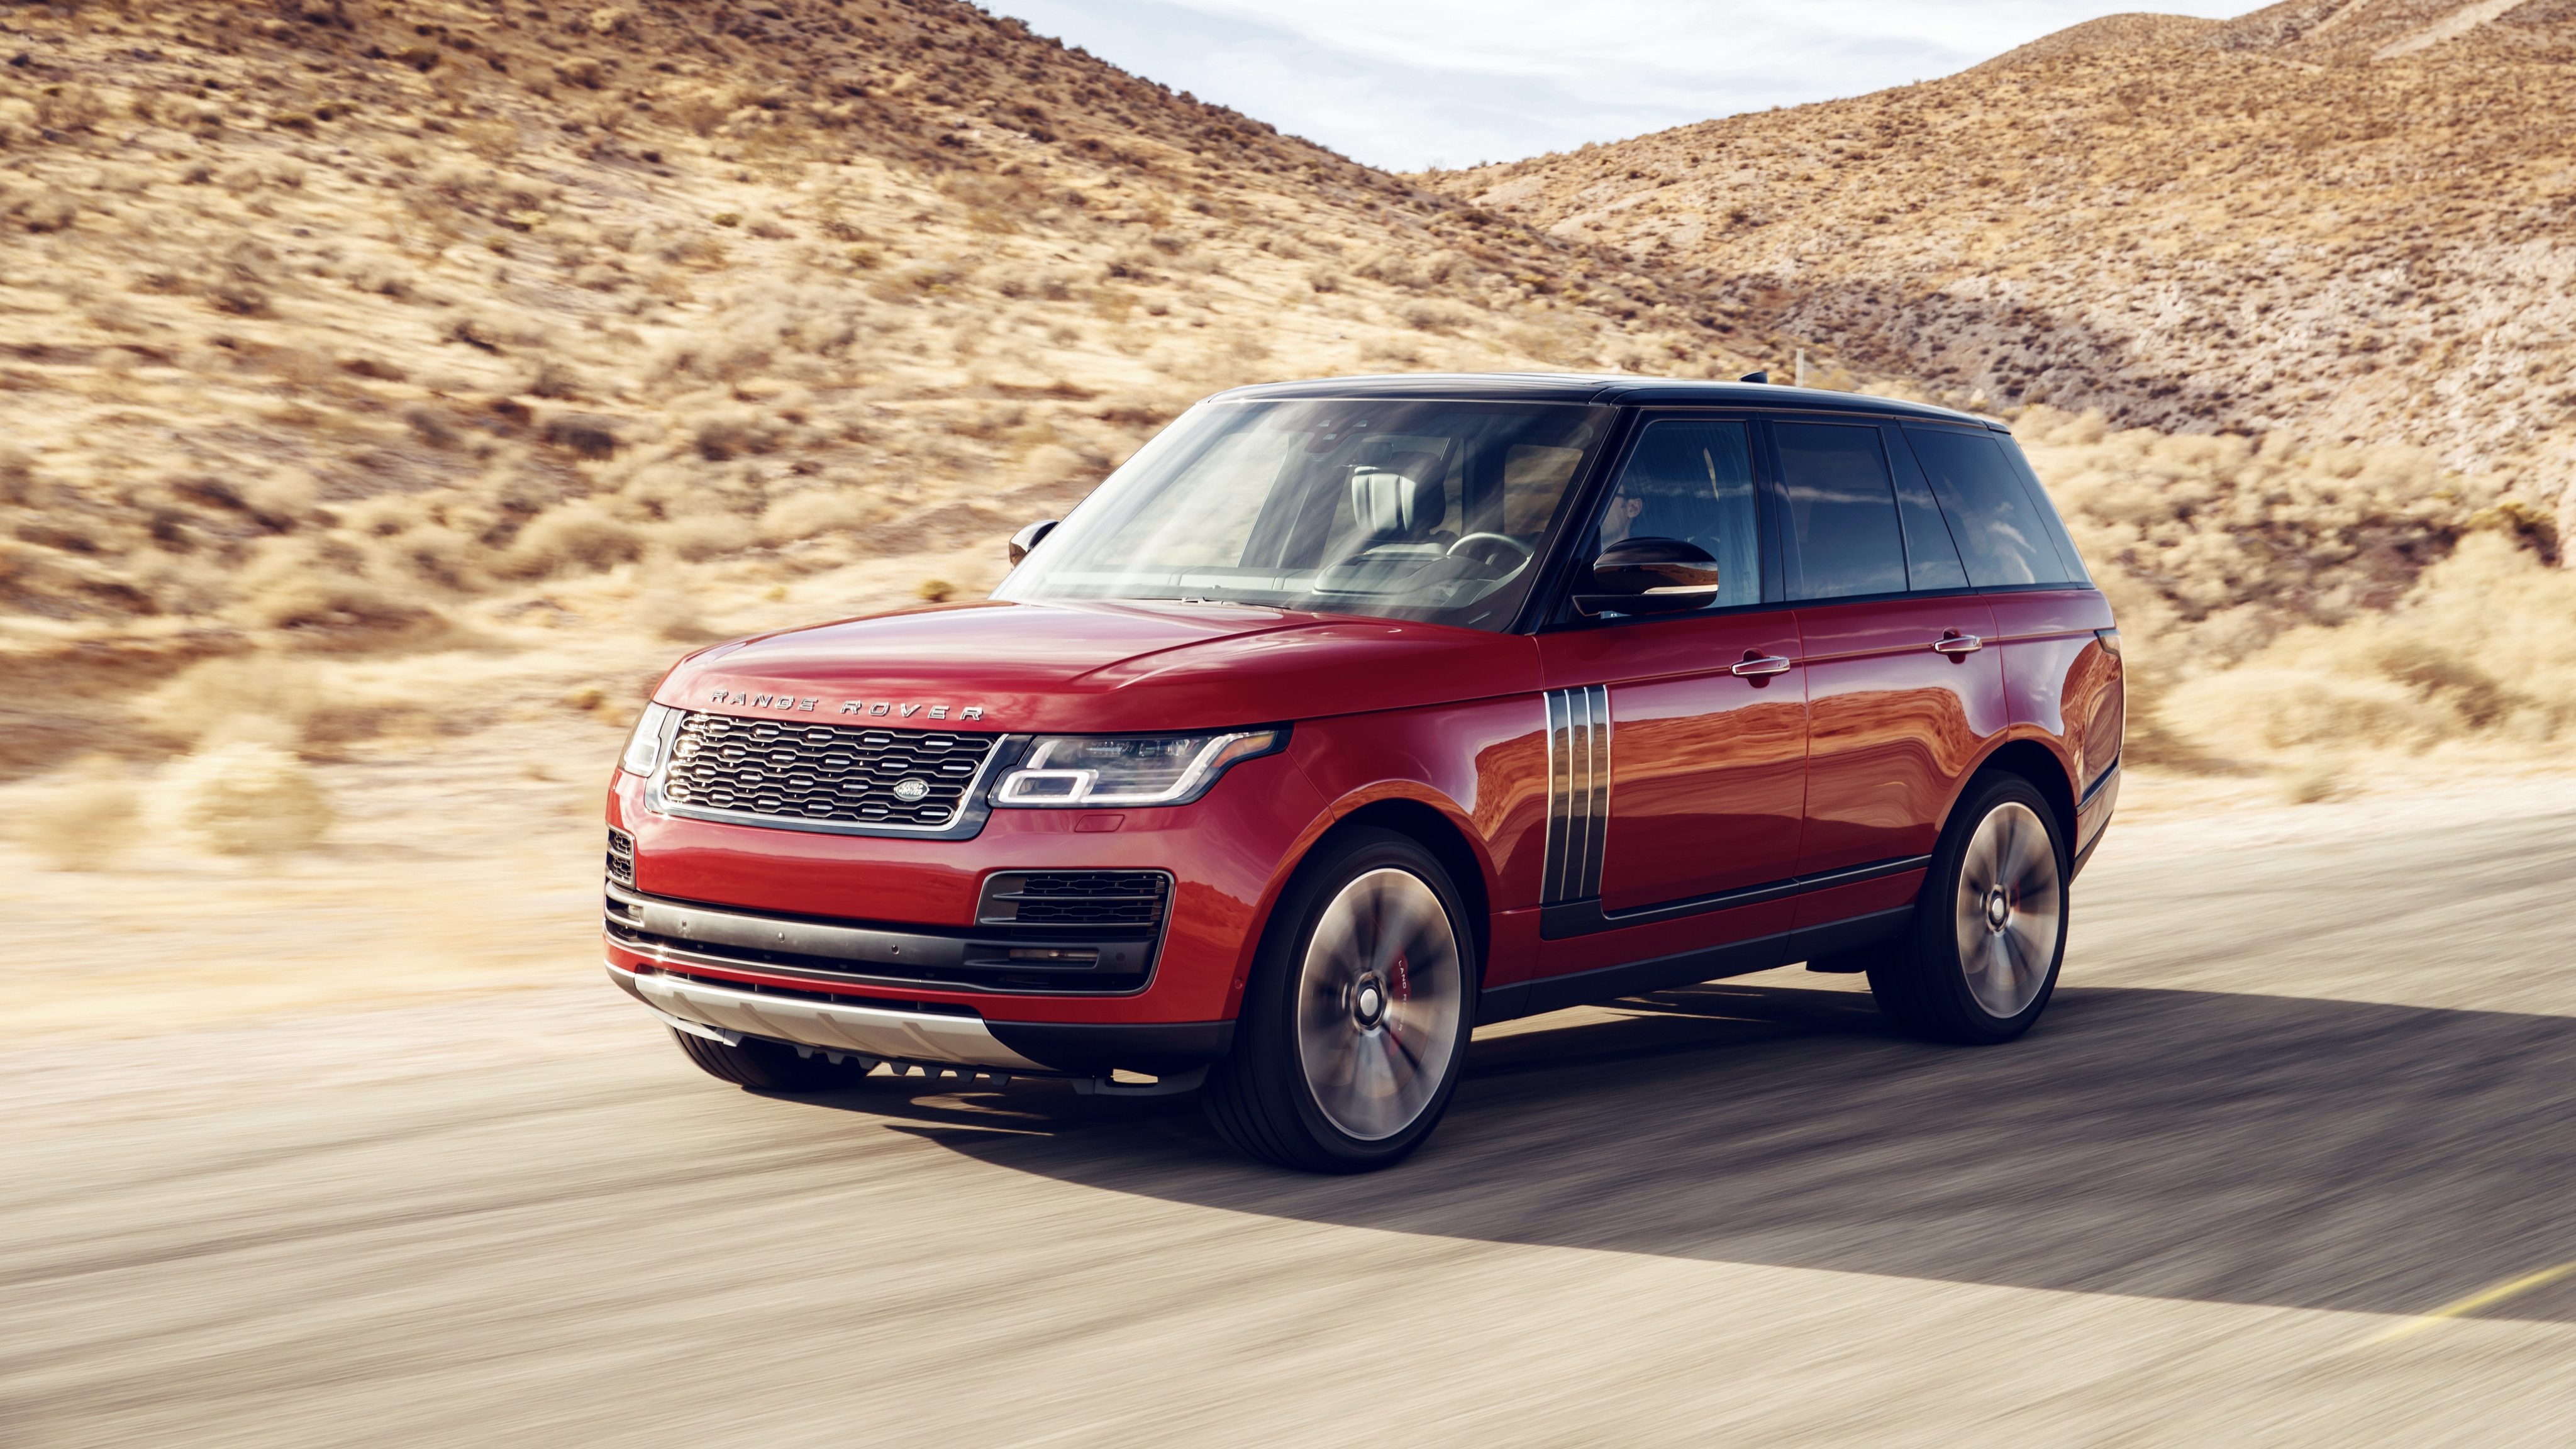 2018 range rover svautobiography dynamic 4k wallpaper hd car wallpapers id 9162. Black Bedroom Furniture Sets. Home Design Ideas